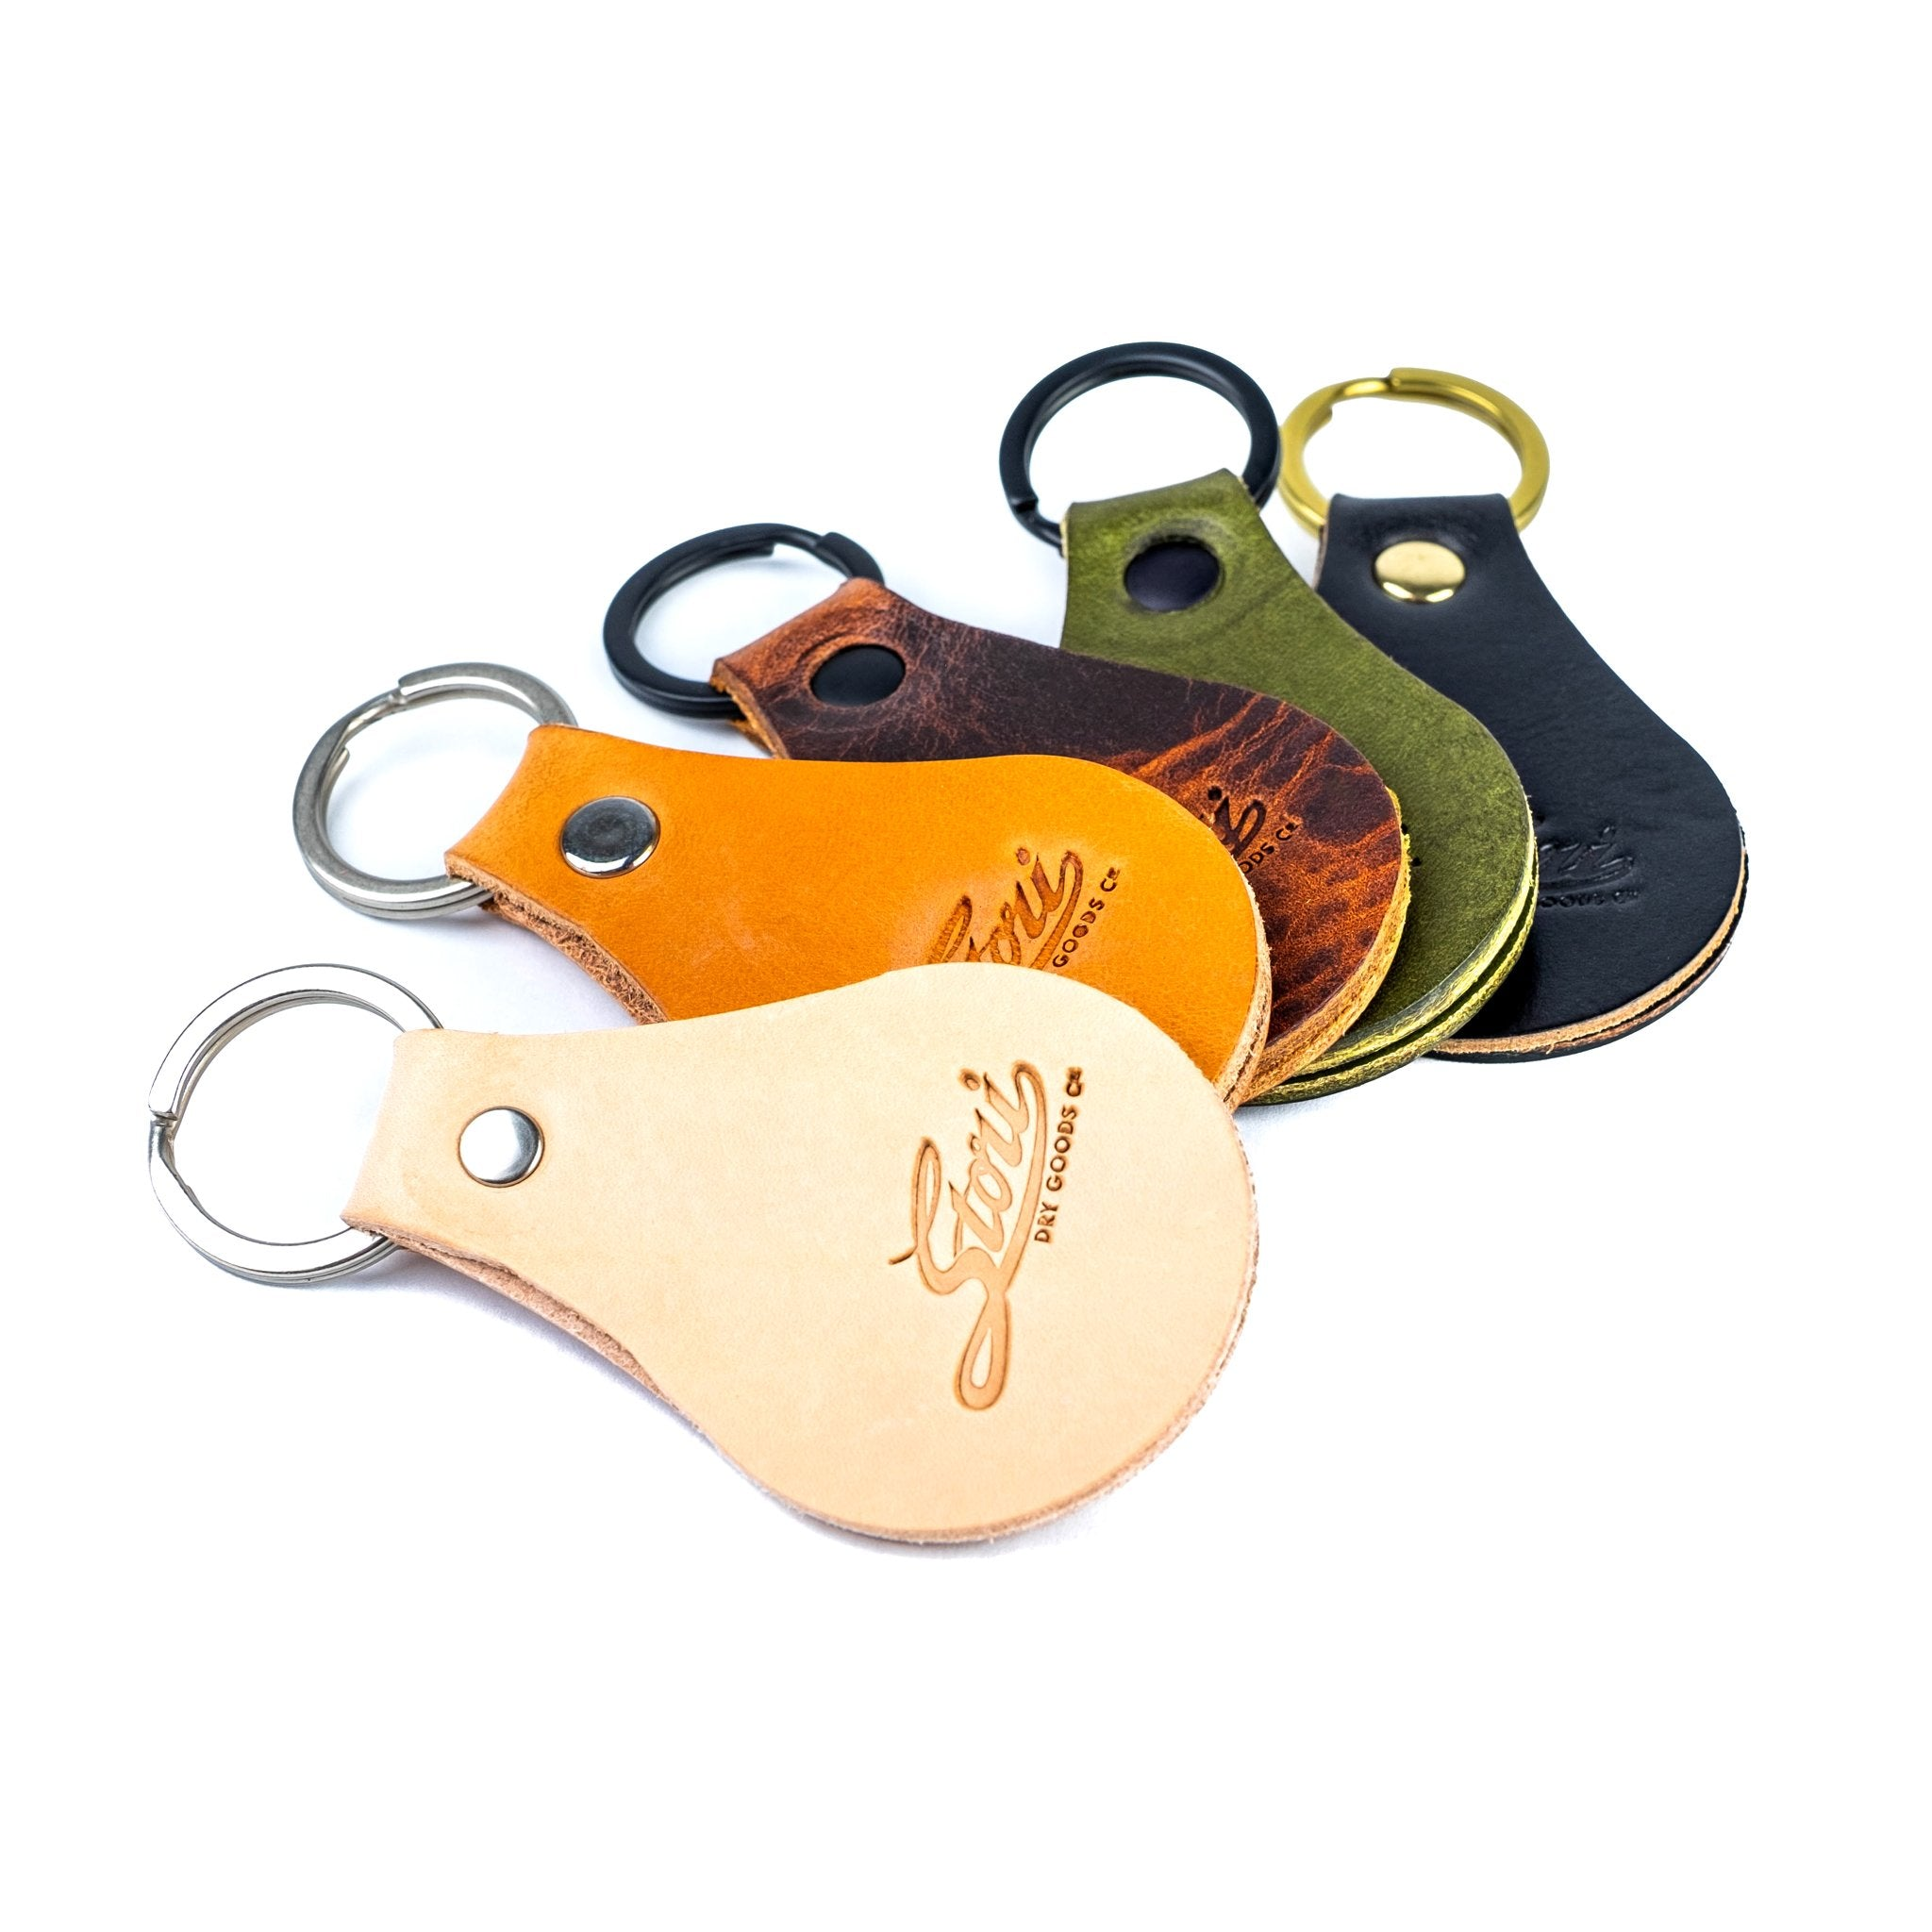 Mission Keychain - Brown